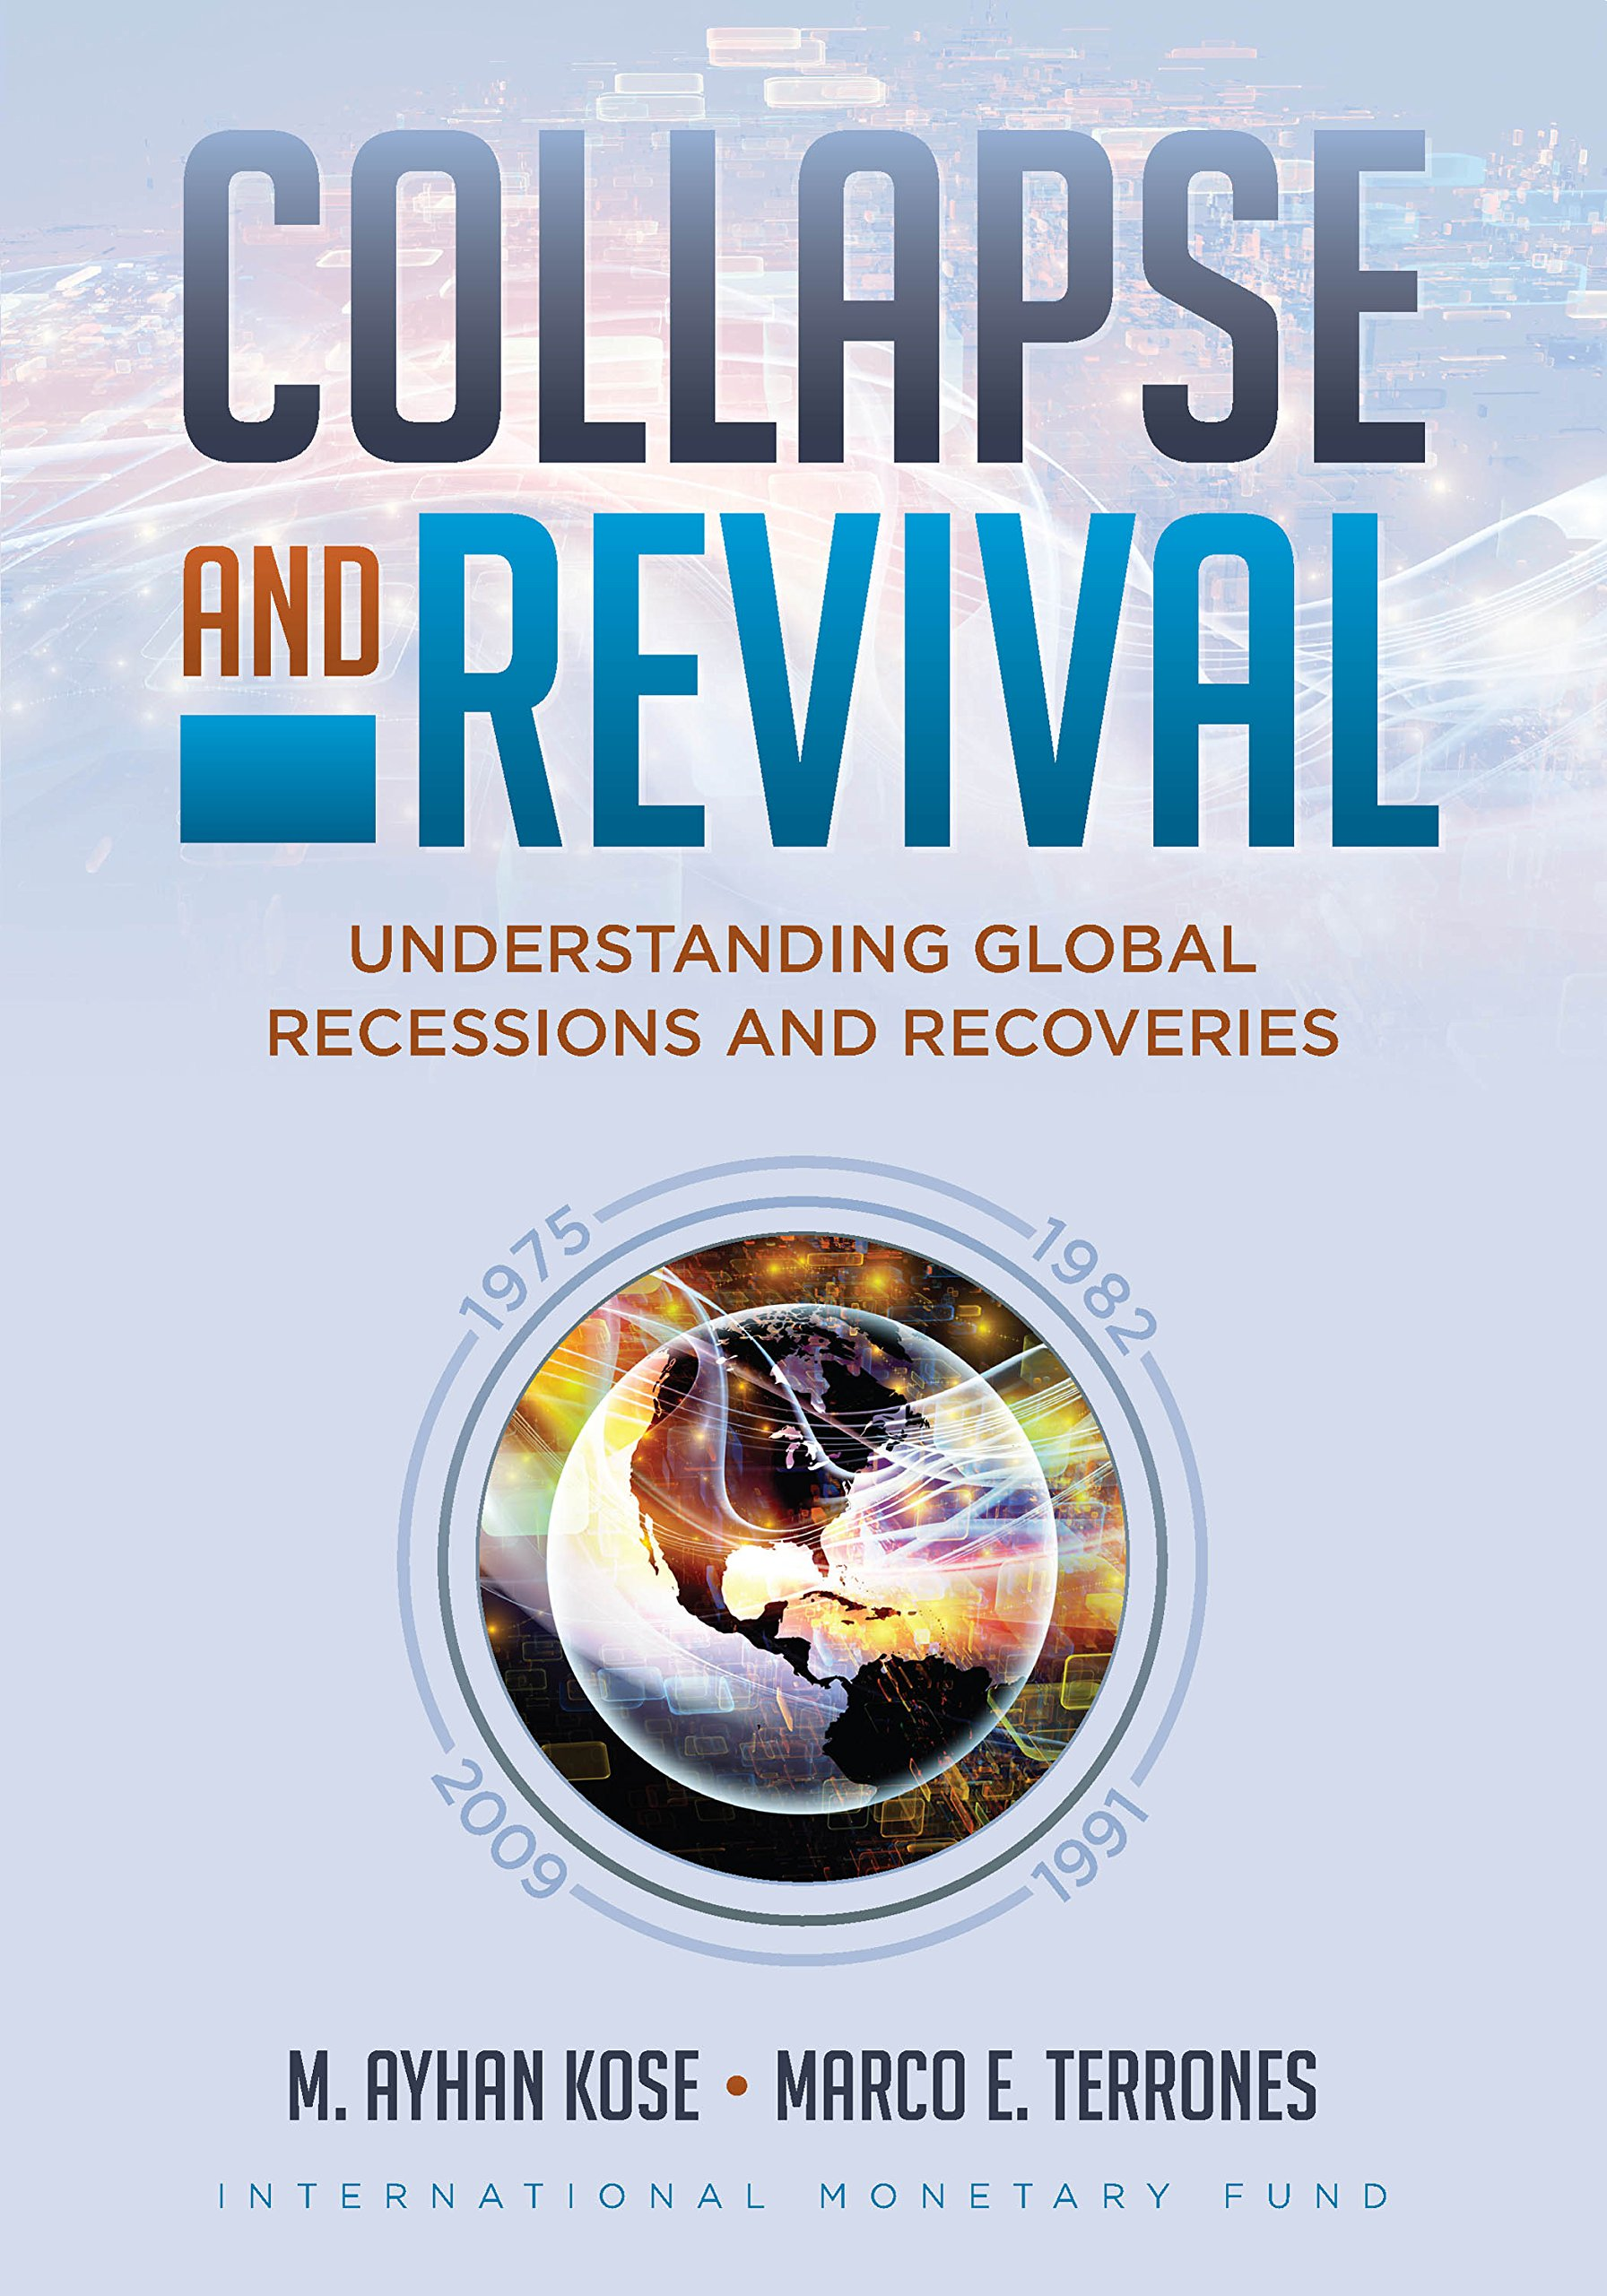 Collapse and Revival: Understanding Global Recessions and Recoveries ISBN-13 9781513570020